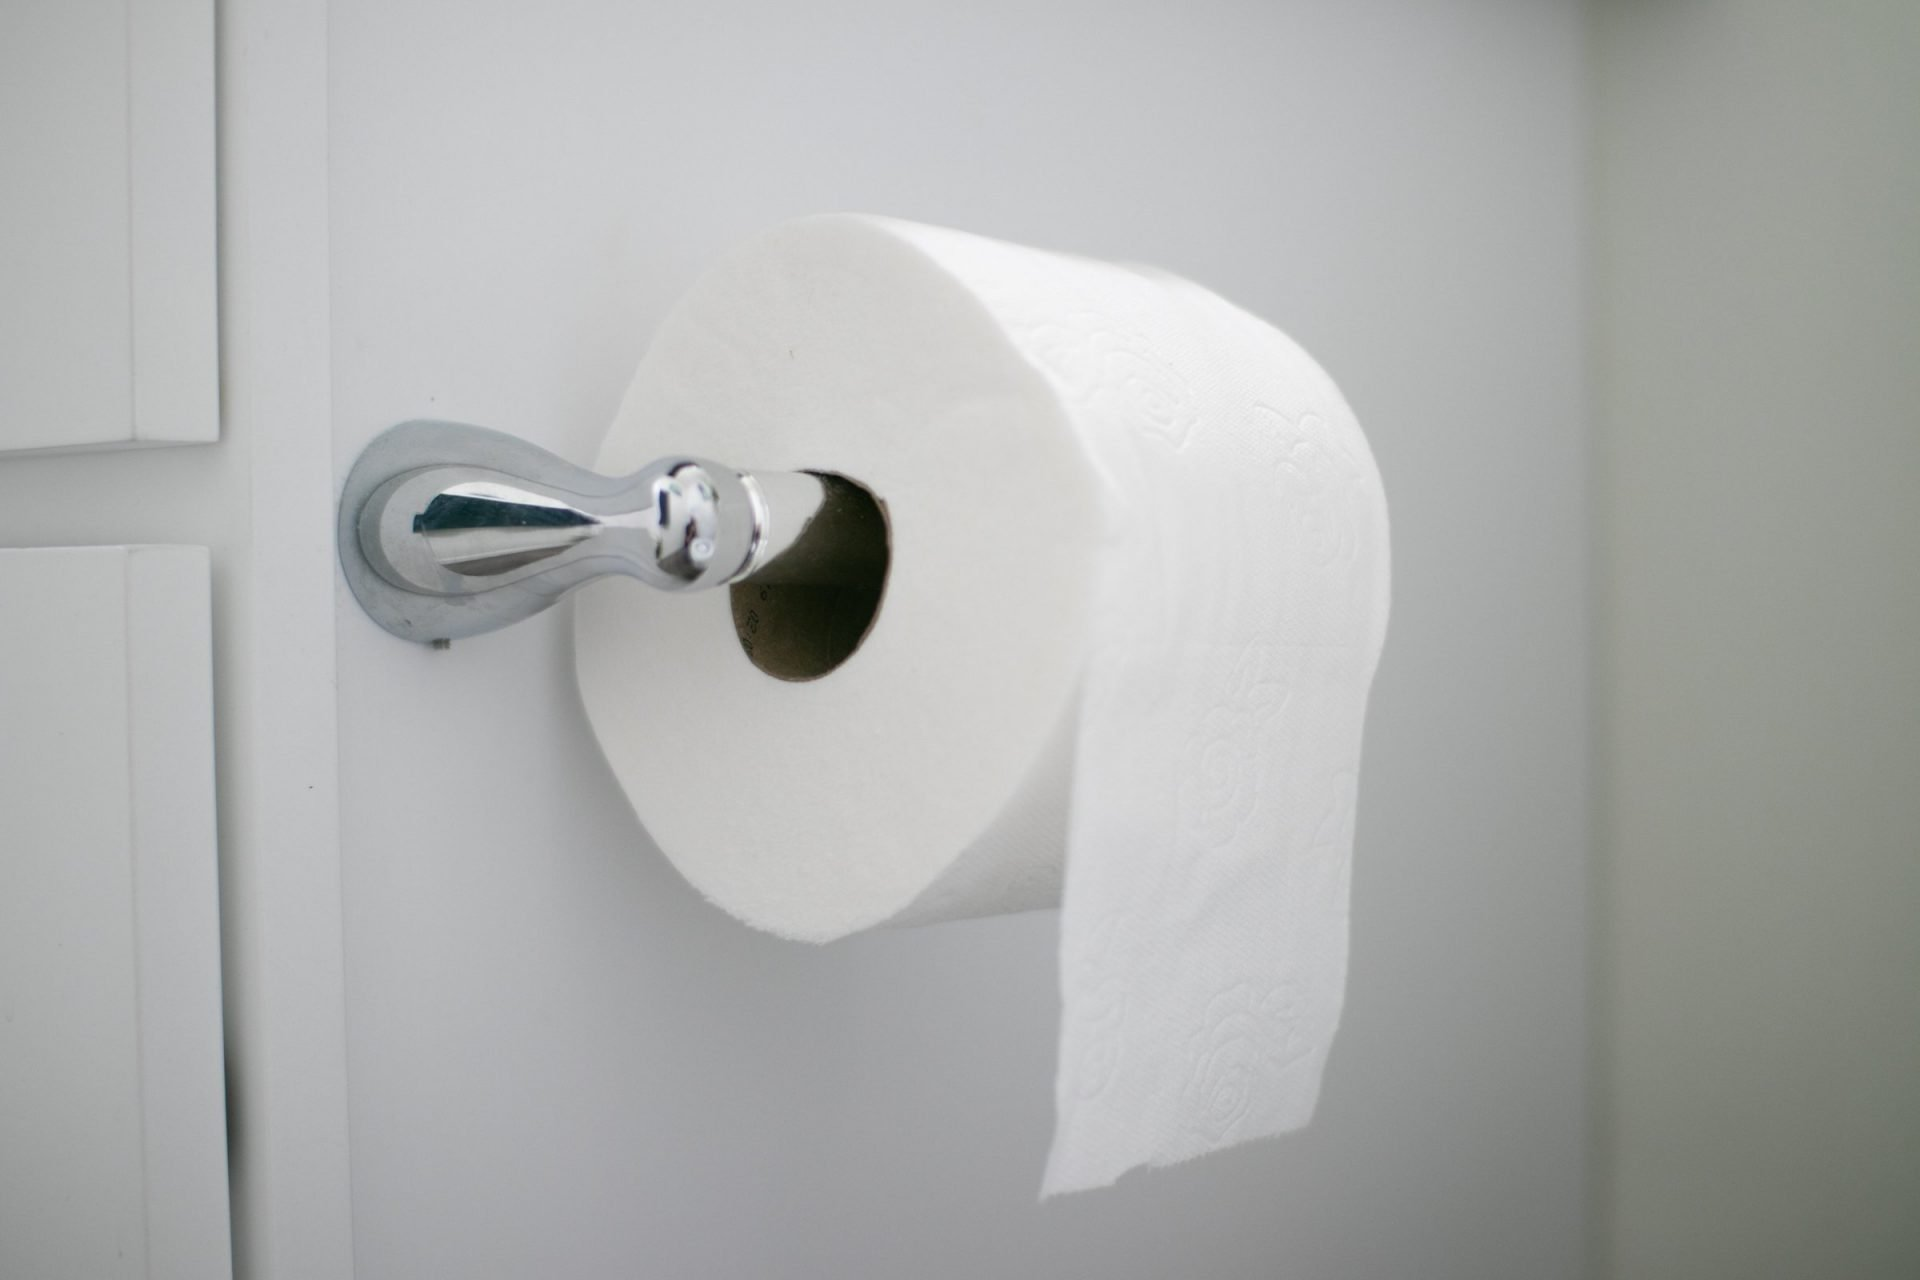 Toilet Paper Roll On Mounted Holder